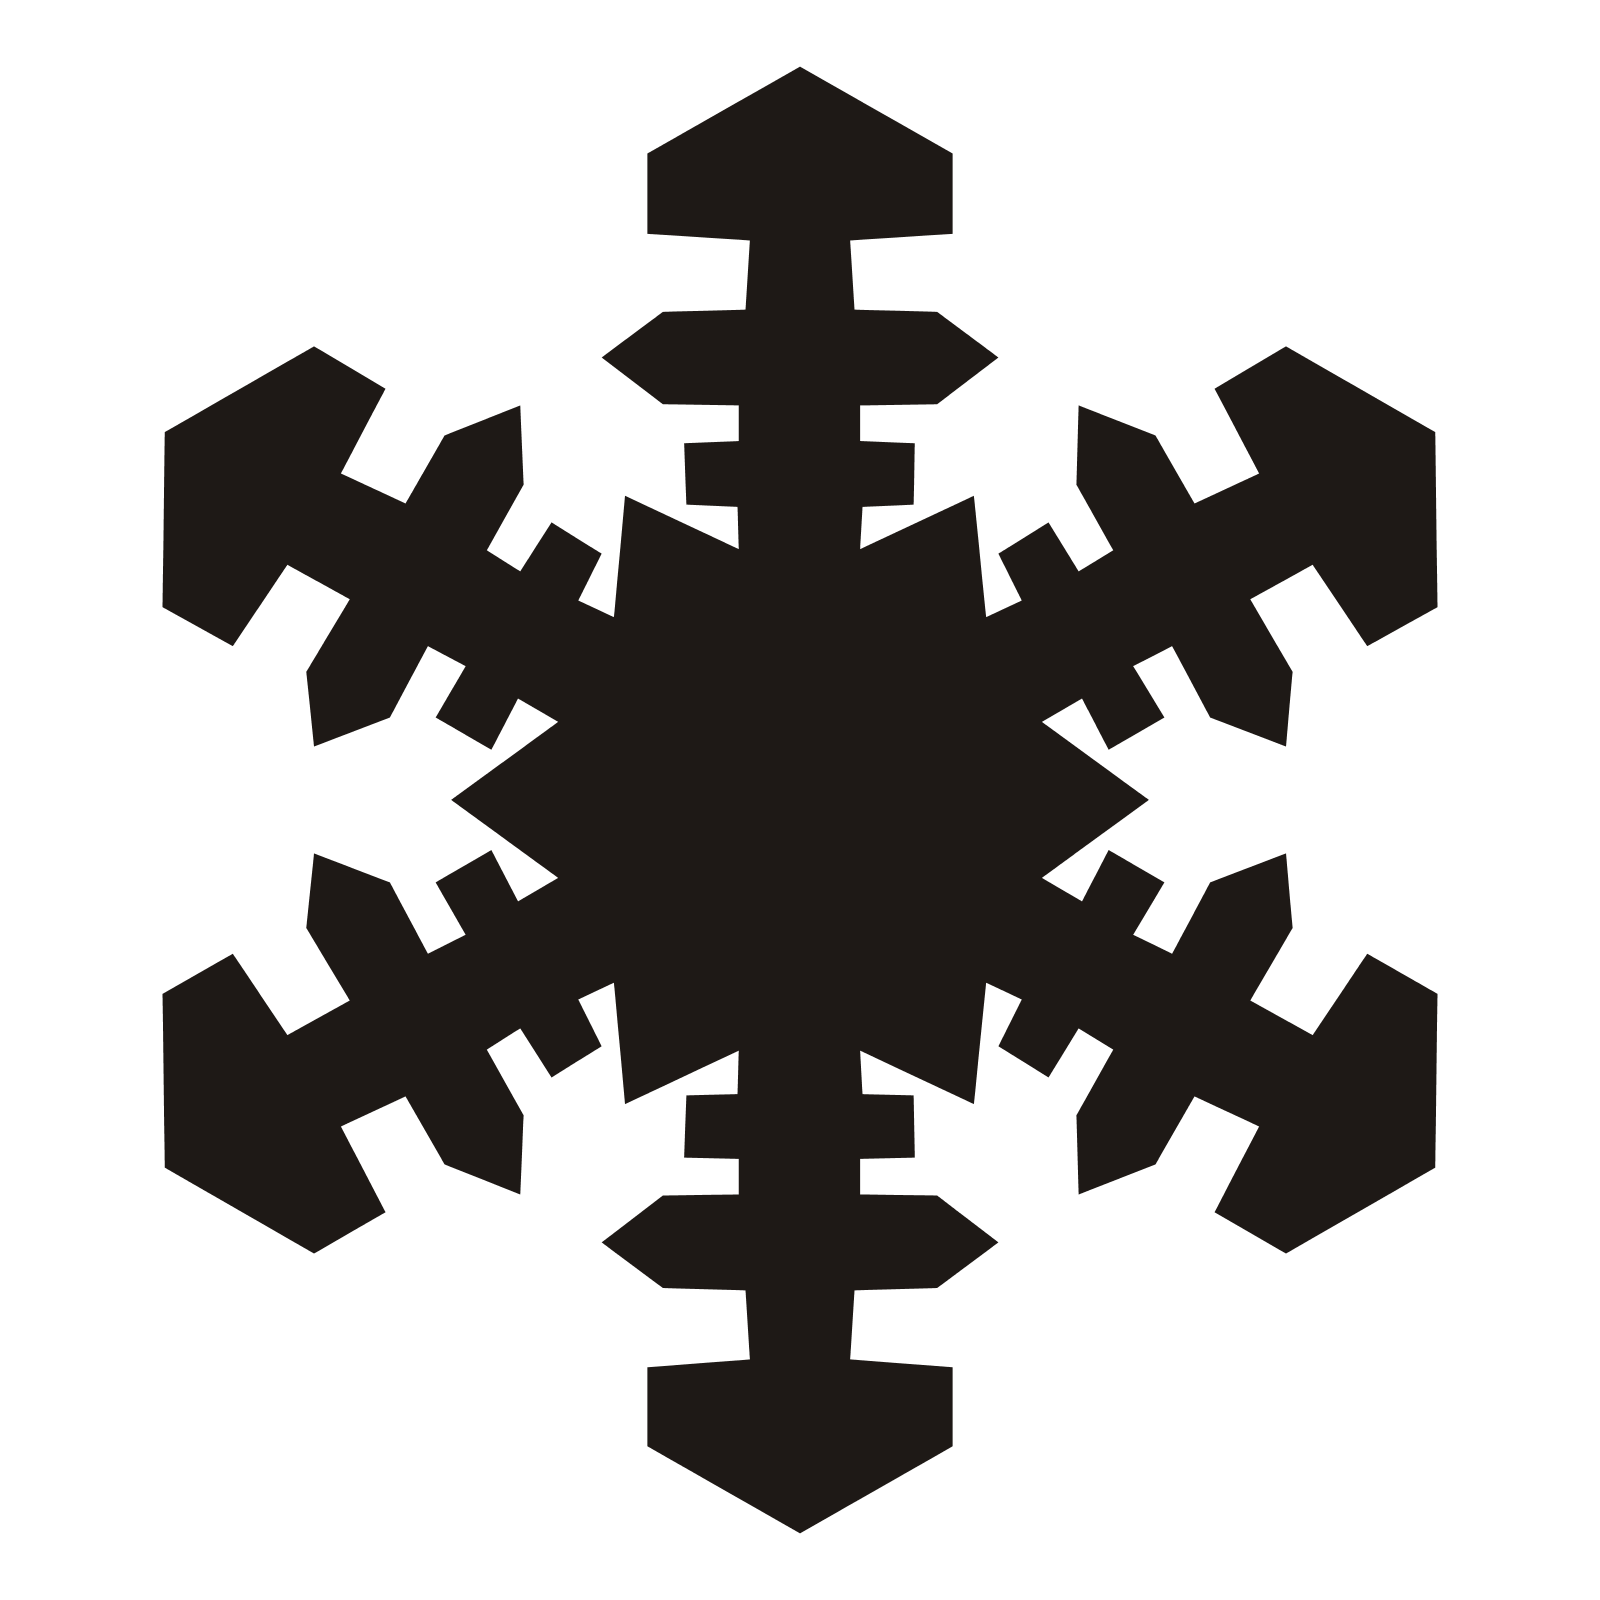 Snowflakes Png2 Png